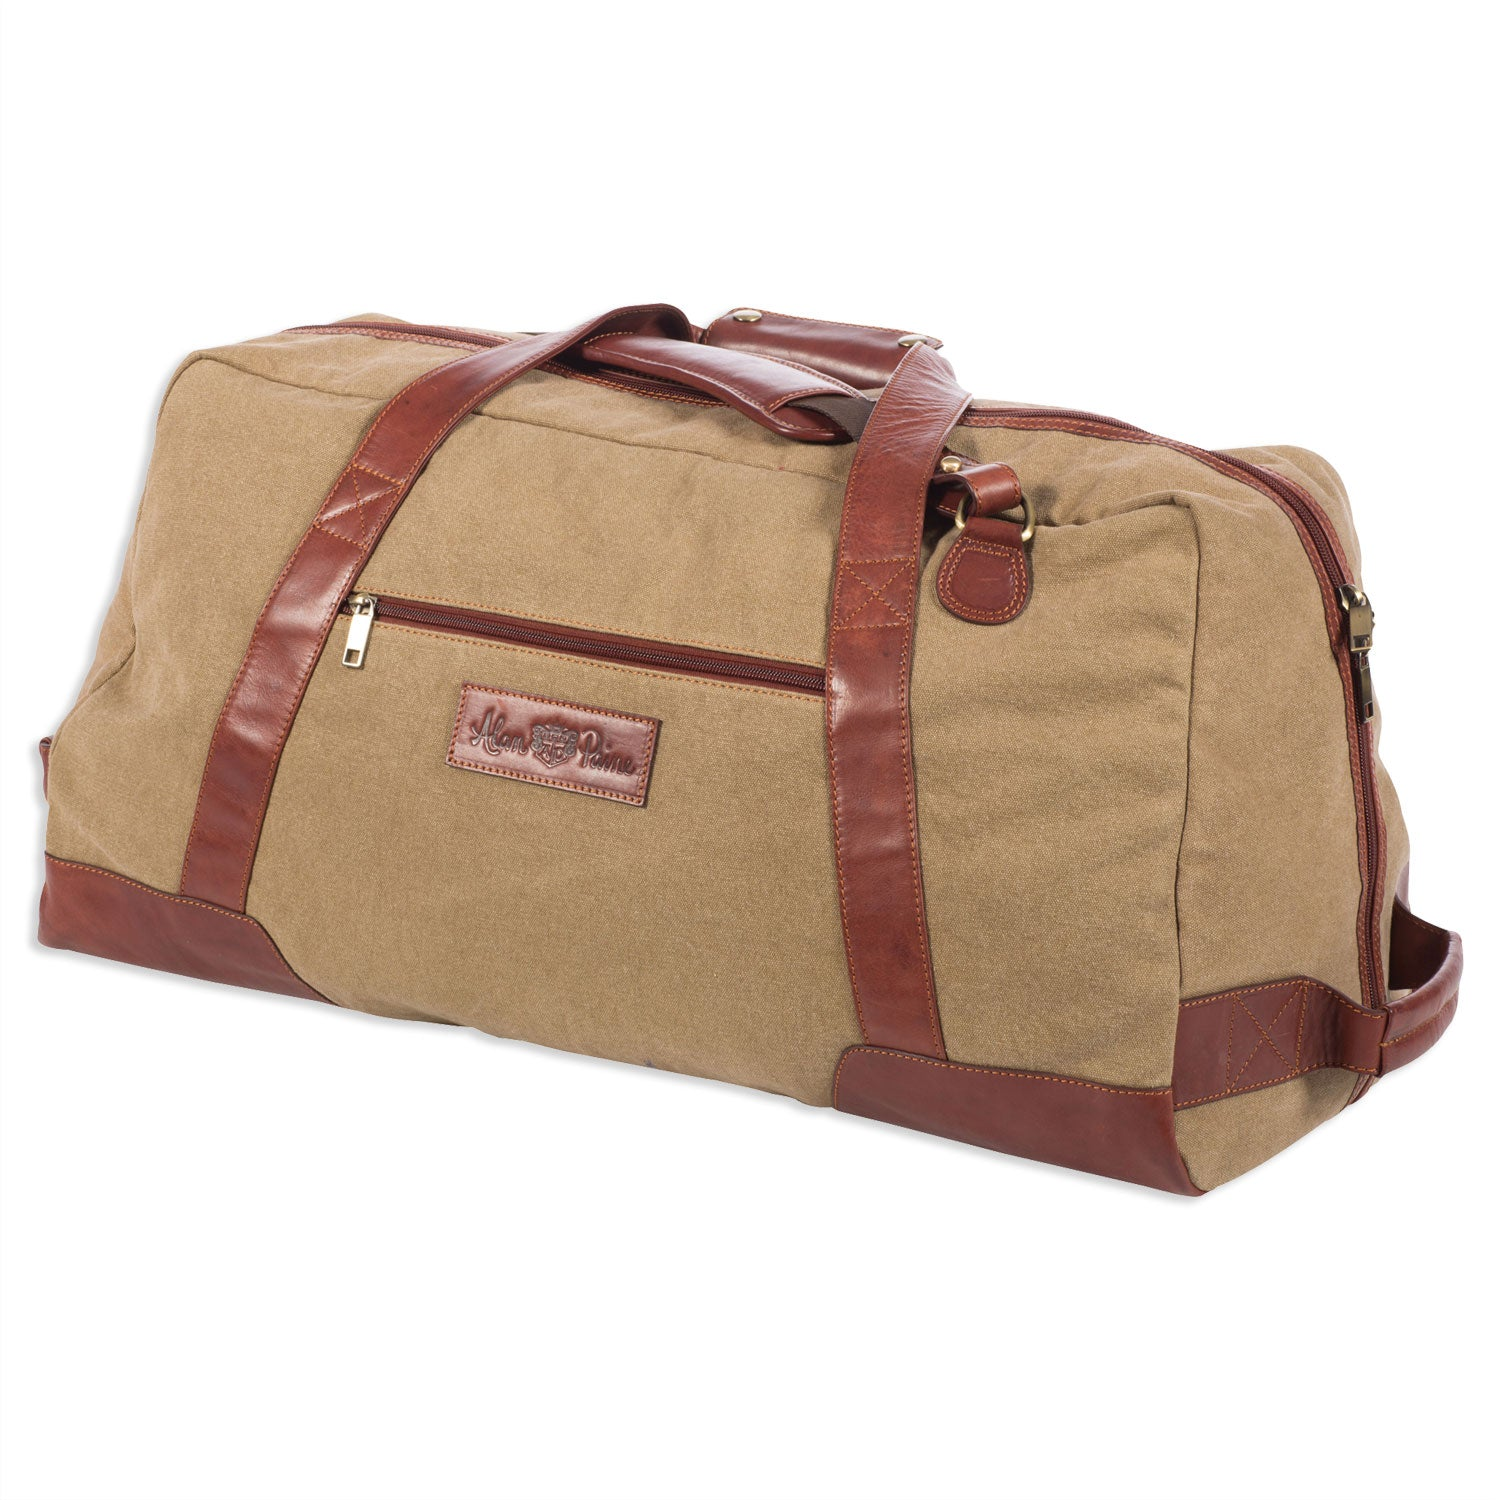 Alan Paine Canvas Travel Bag | Sand